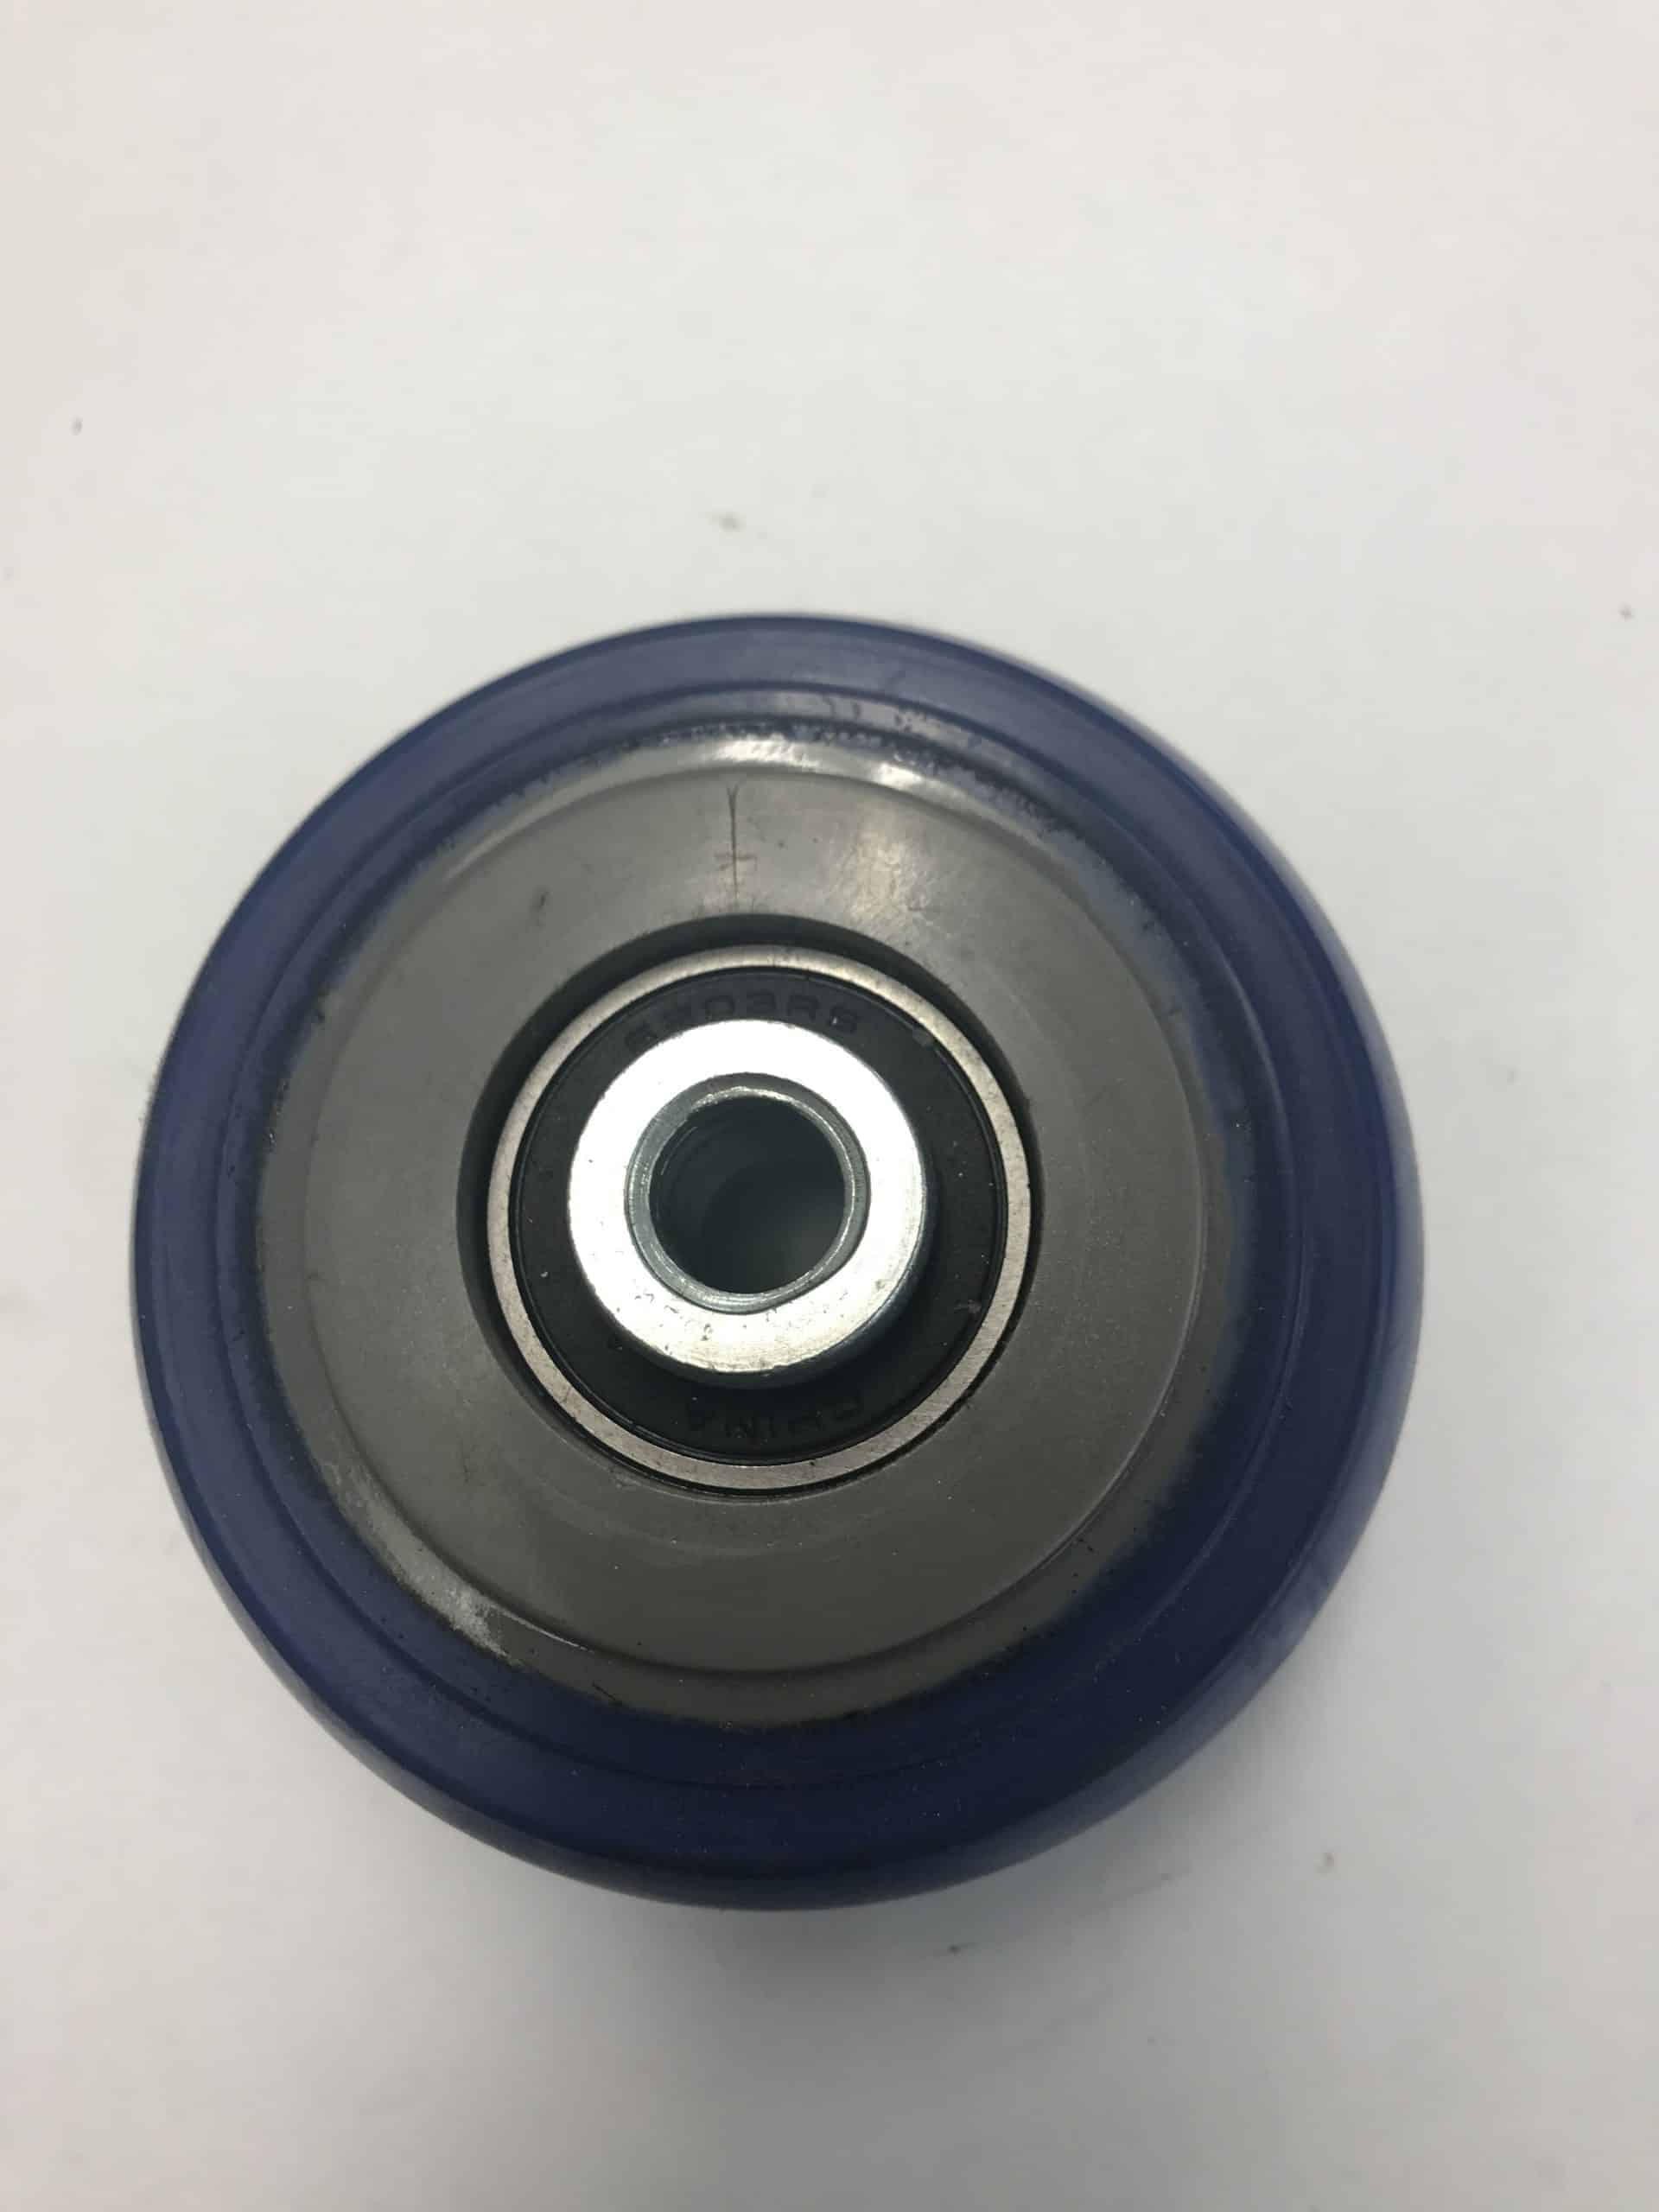 4″ Ergo Blue Wheel 300lb Load Cap ***Limited Supply***